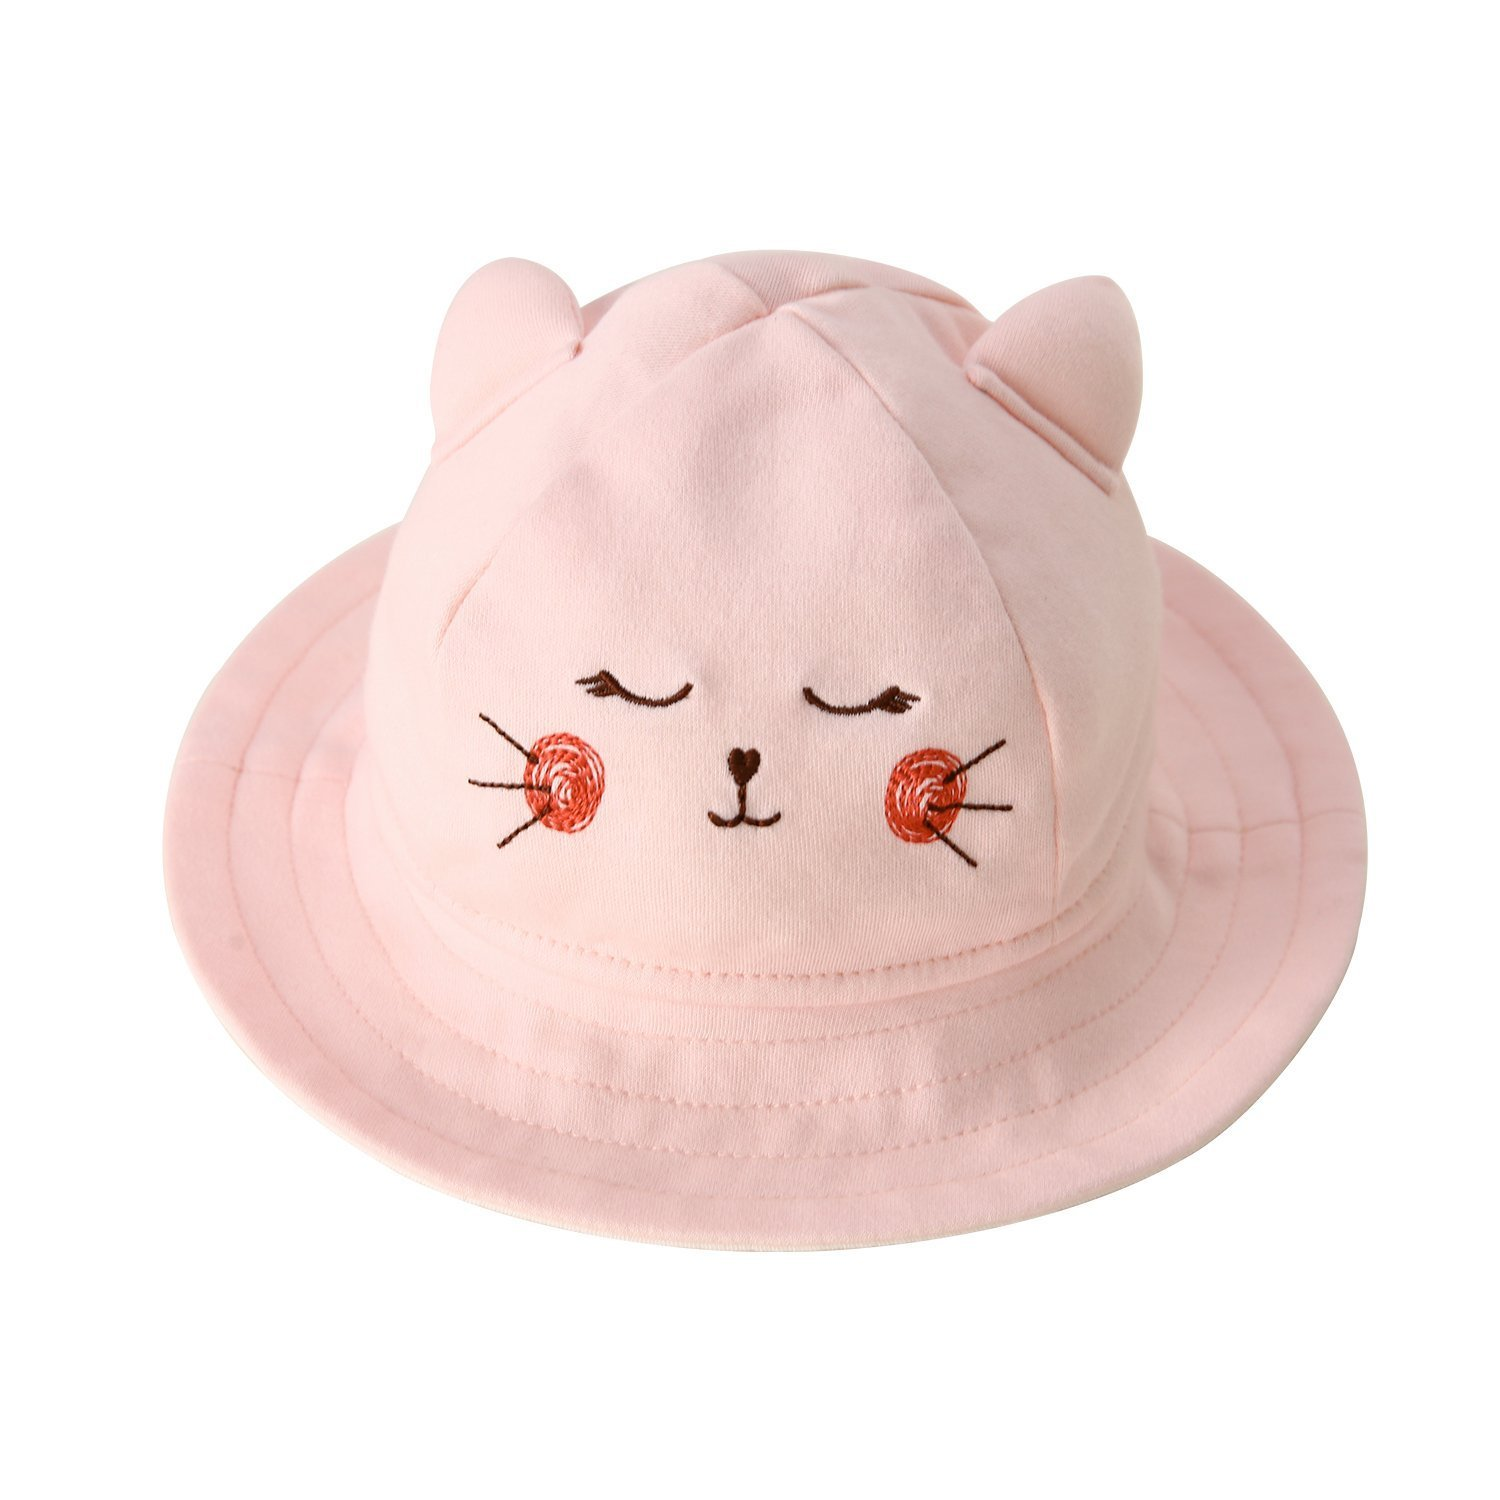 Baby Toddler Kids Breathable Sun Hat Animal Bucket Hat with Wide Brim for Boys & Girls Spring Summer Pink 3-6 Months